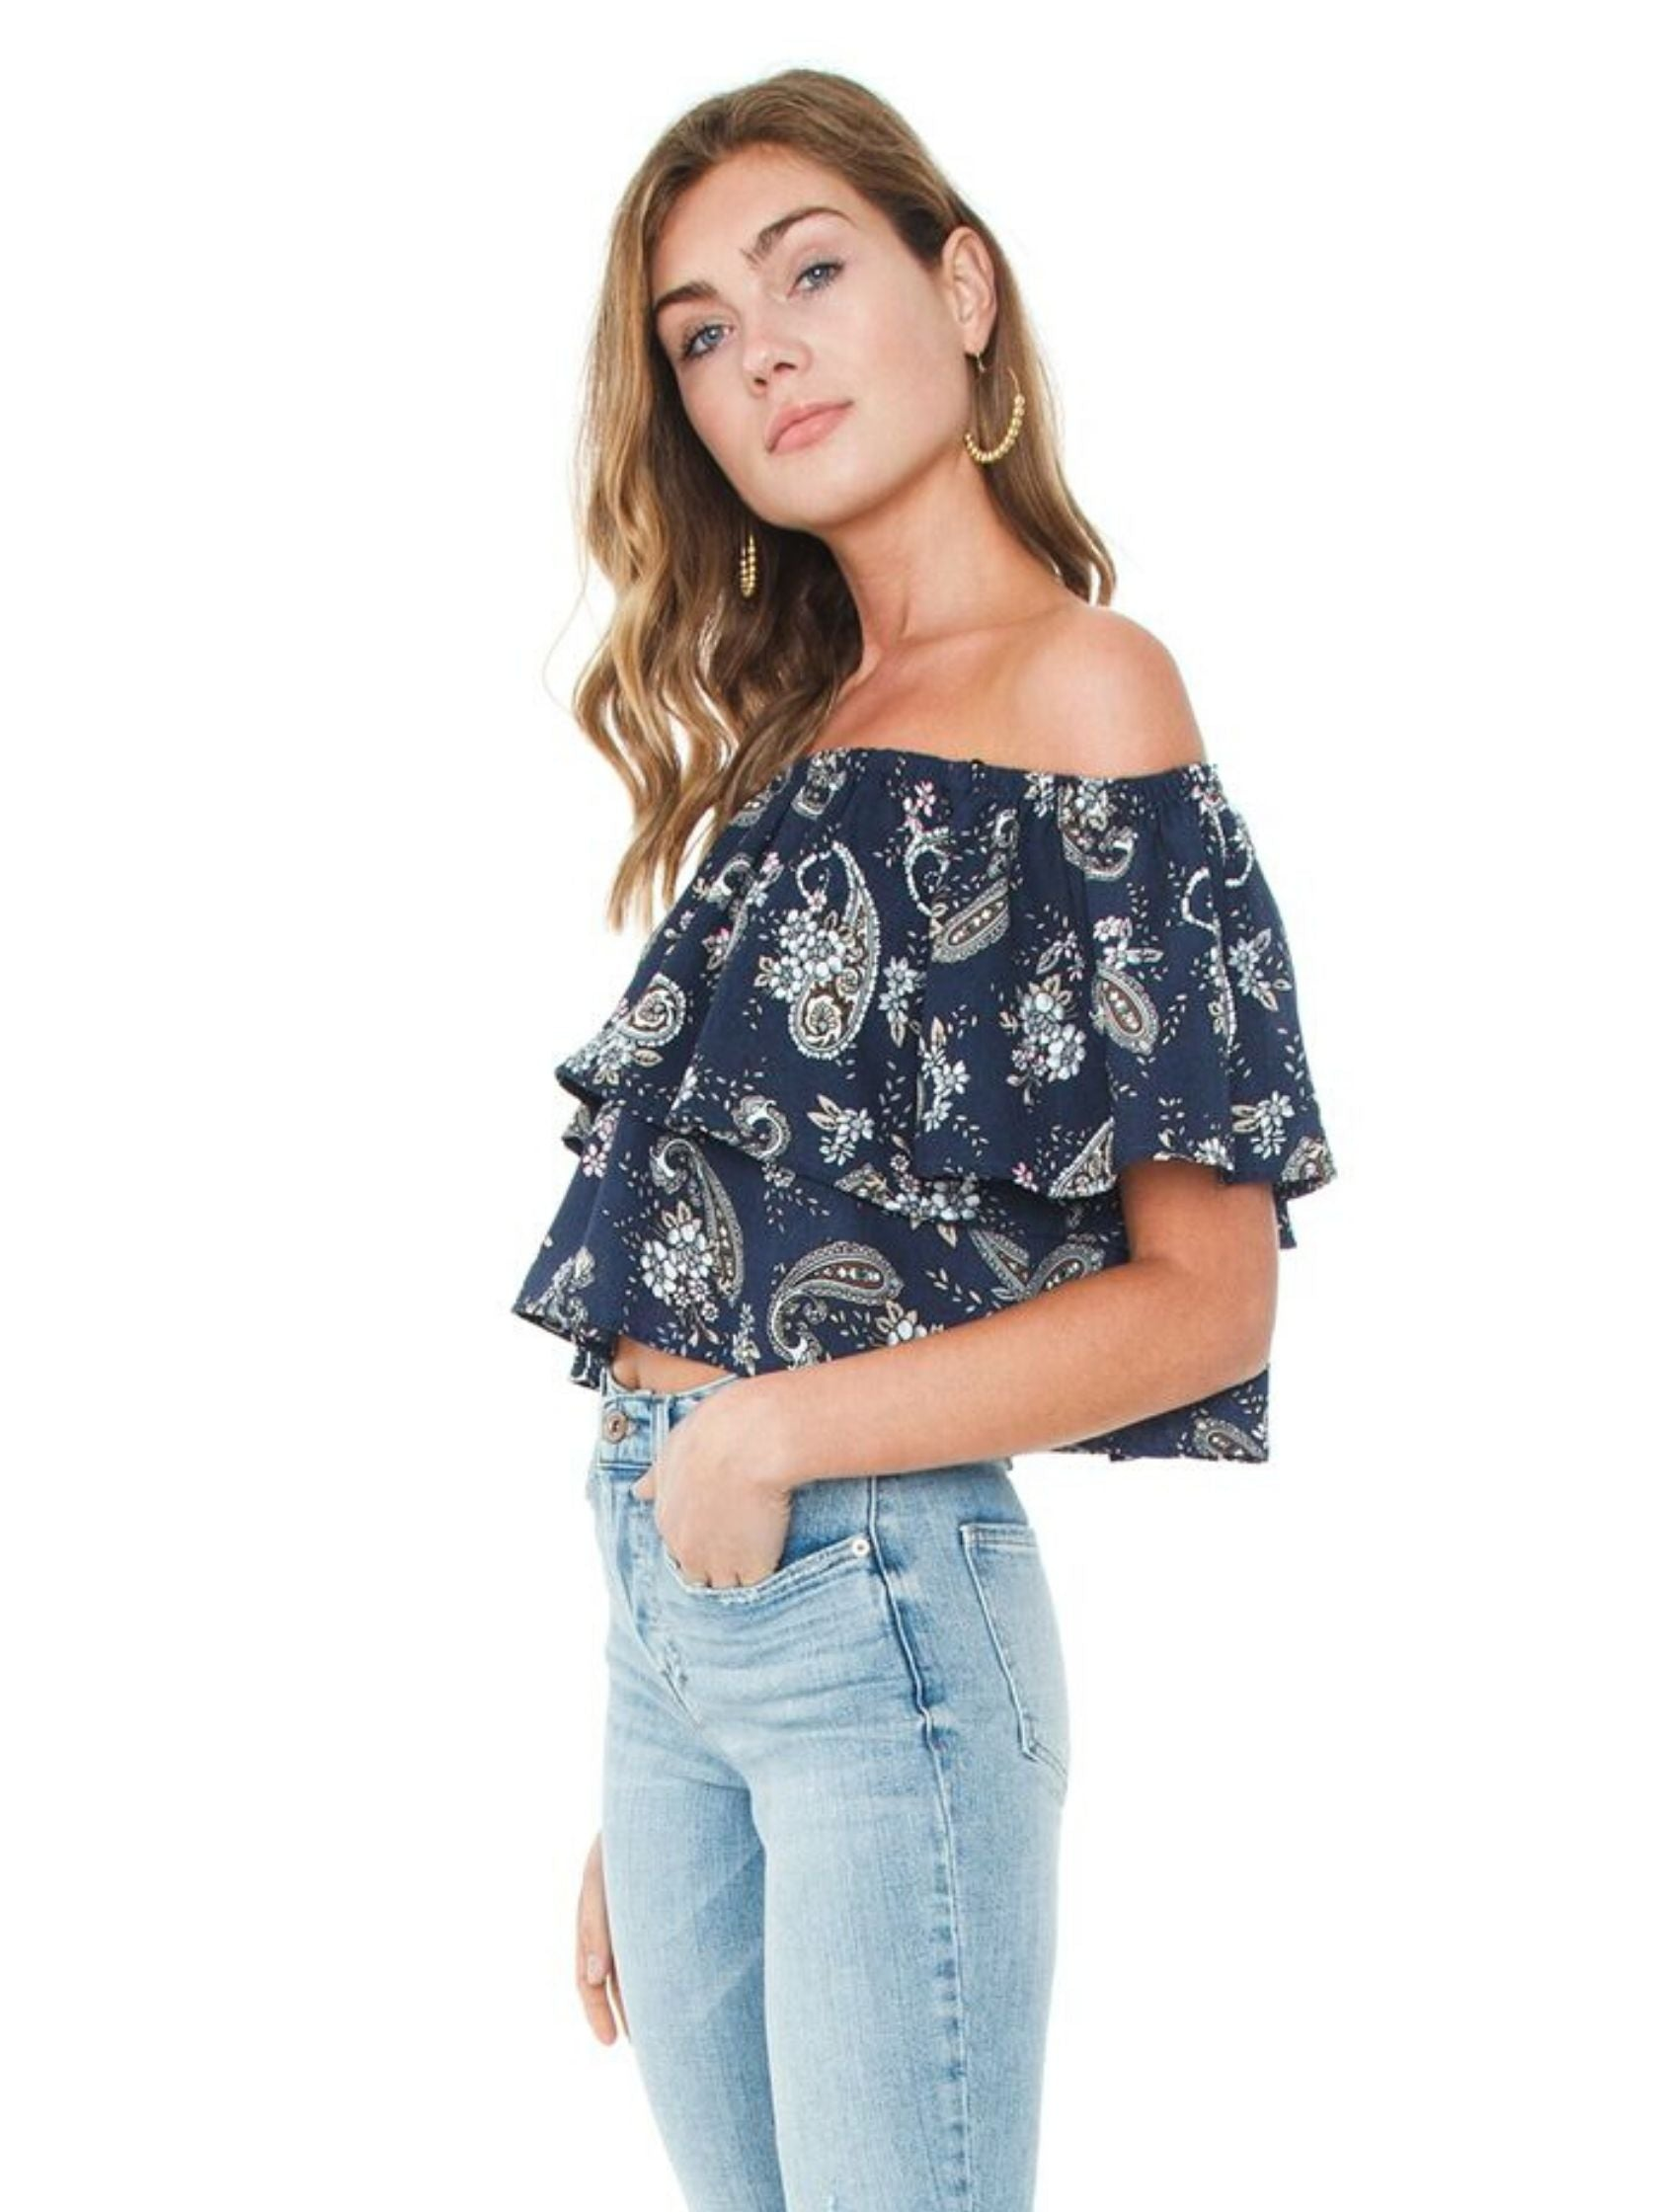 Women wearing a top rental from J.O.A. called Off Shoulder Top